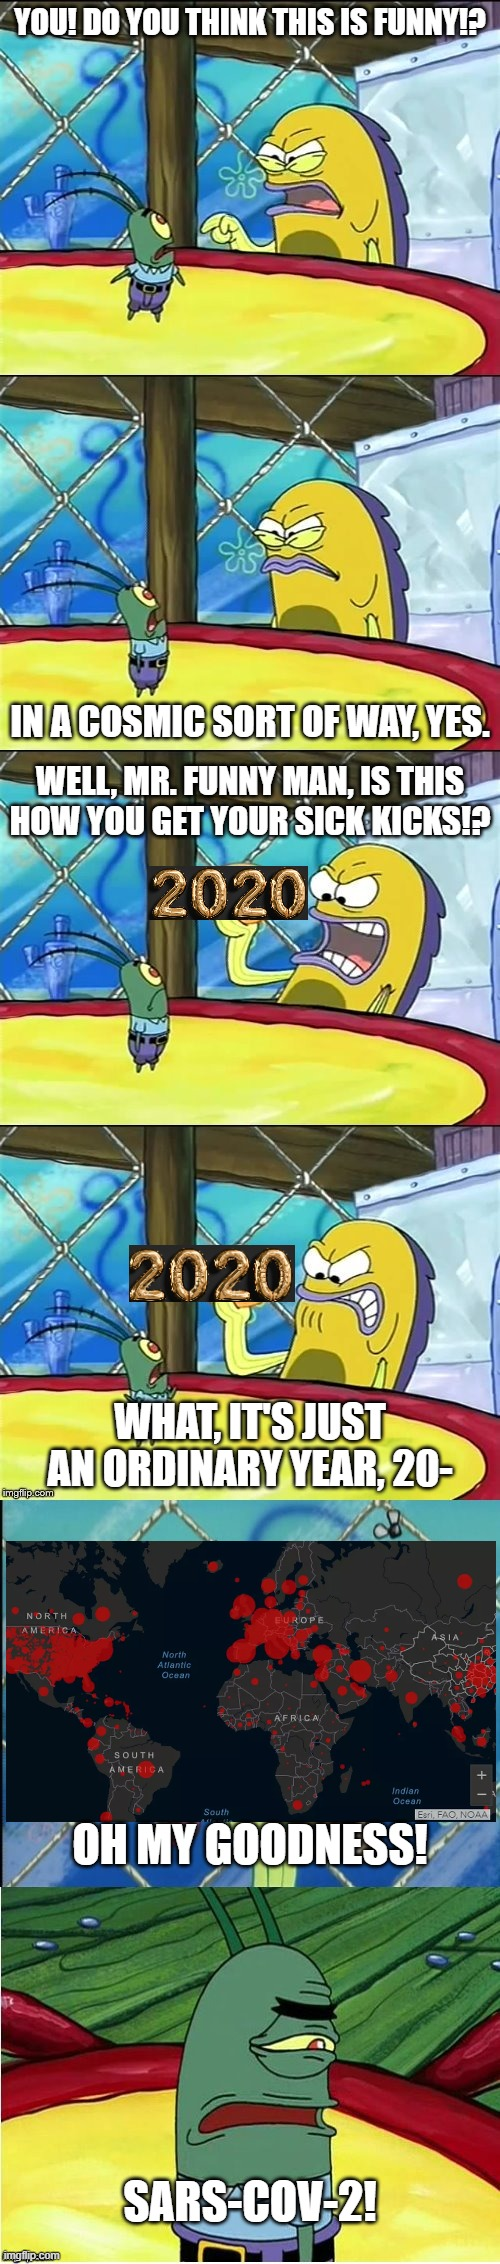 Plankton's Reaction to 2020 |  YOU! DO YOU THINK THIS IS FUNNY!? IN A COSMIC SORT OF WAY, YES. WELL, MR. FUNNY MAN, IS THIS HOW YOU GET YOUR SICK KICKS!? WHAT, IT'S JUST AN ORDINARY YEAR, 20-; OH MY GOODNESS! SARS-COV-2! | image tagged in you think this is funny,coronavirus,spongebob squarepants | made w/ Imgflip meme maker